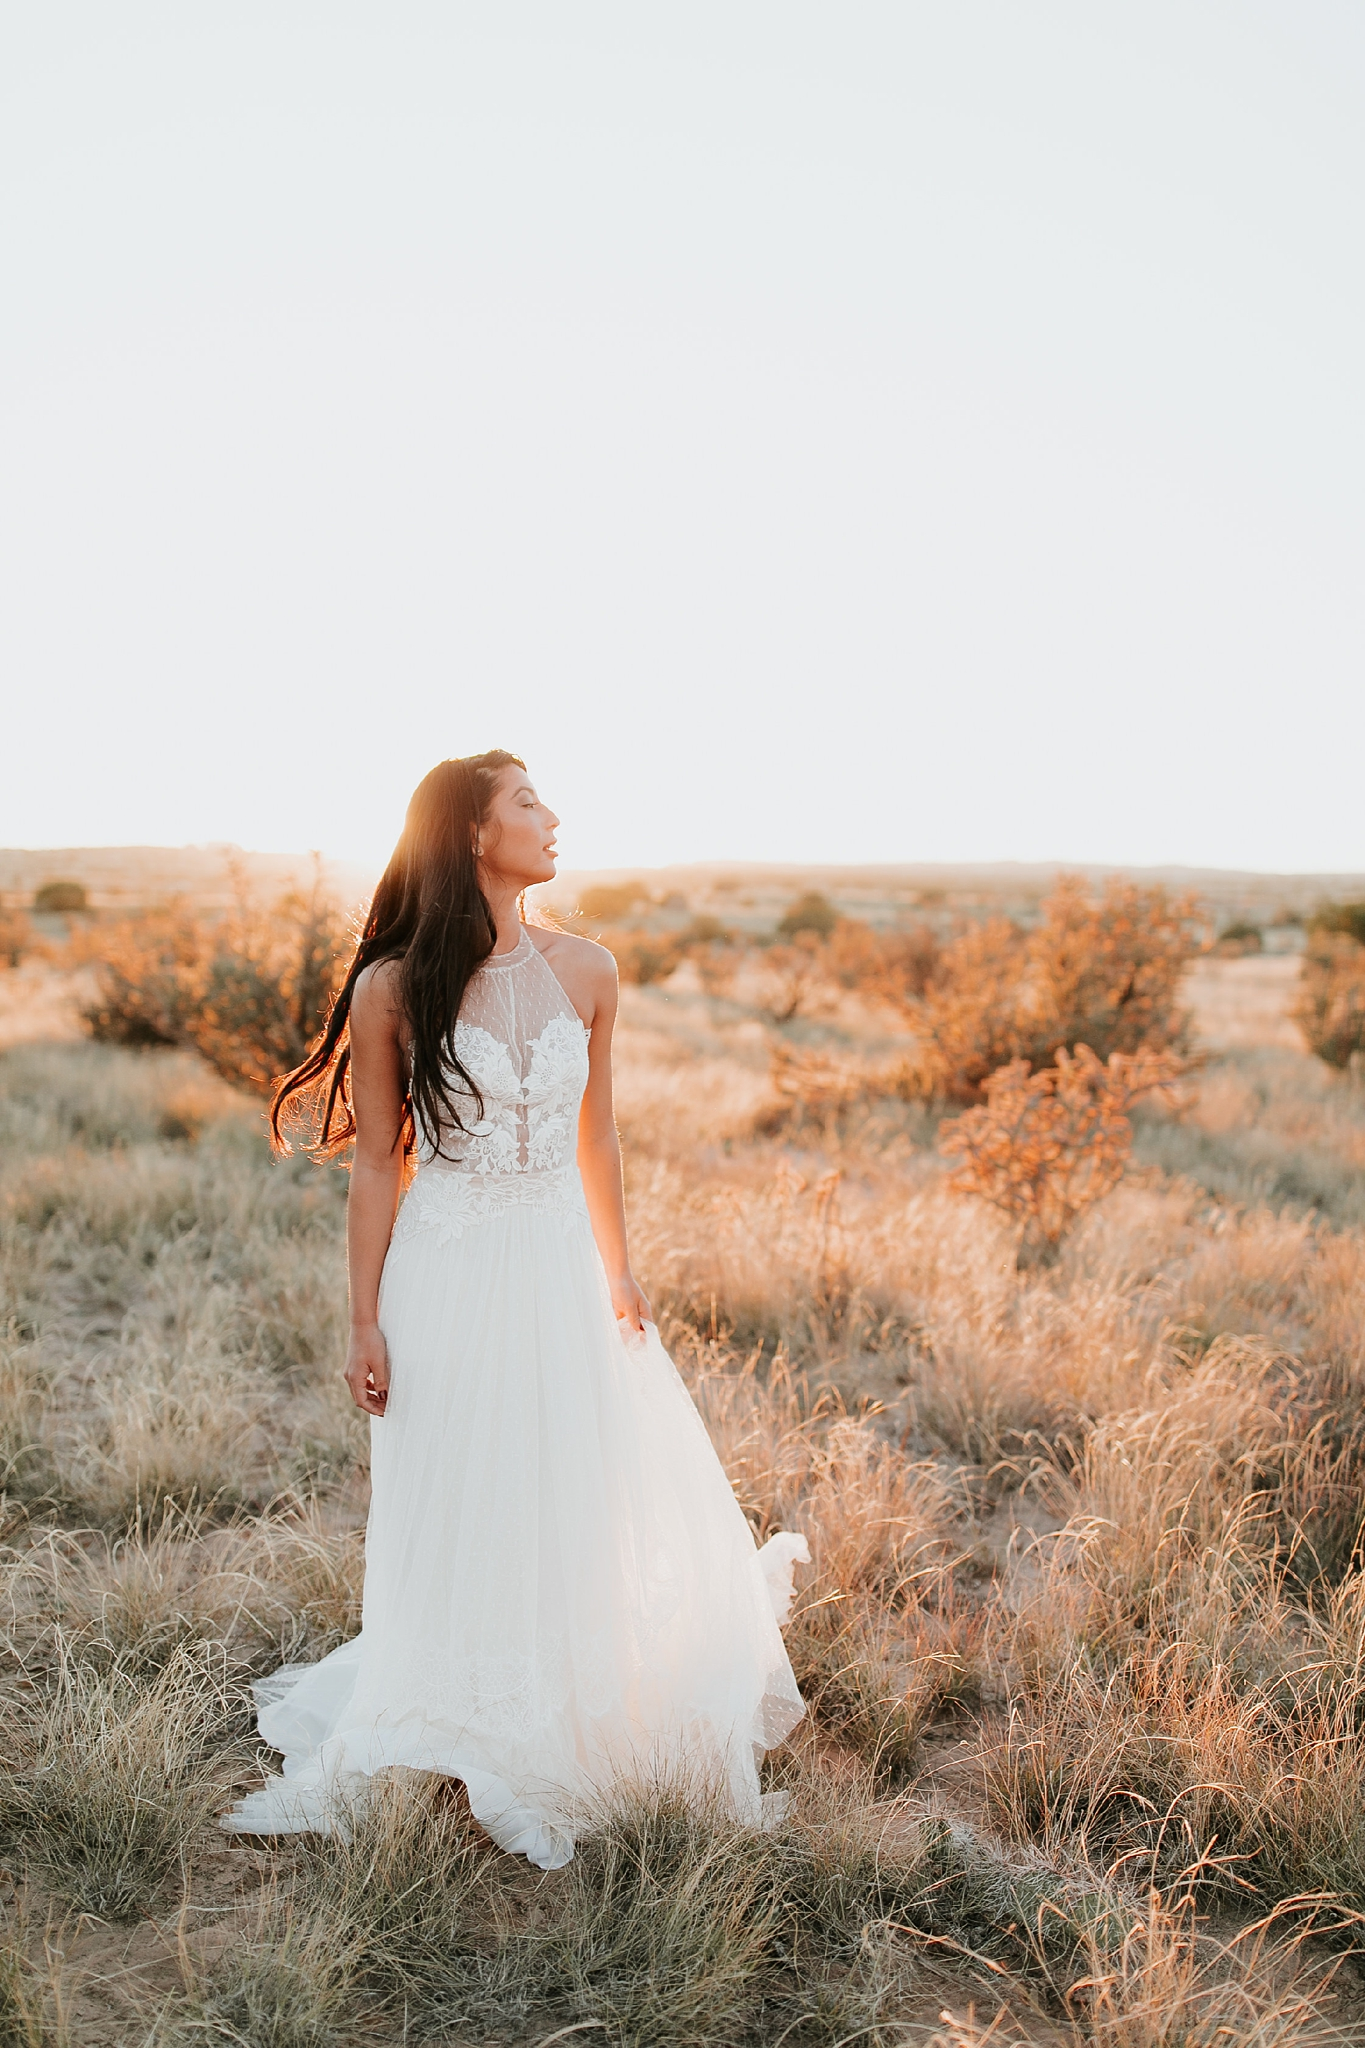 Alicia+lucia+photography+-+albuquerque+wedding+photographer+-+santa+fe+wedding+photography+-+new+mexico+wedding+photographer+-+new+mexico+wedding+-+wedding+gowns+-+bridal+gowns+-+a+line+wedding+gown_0054.jpg